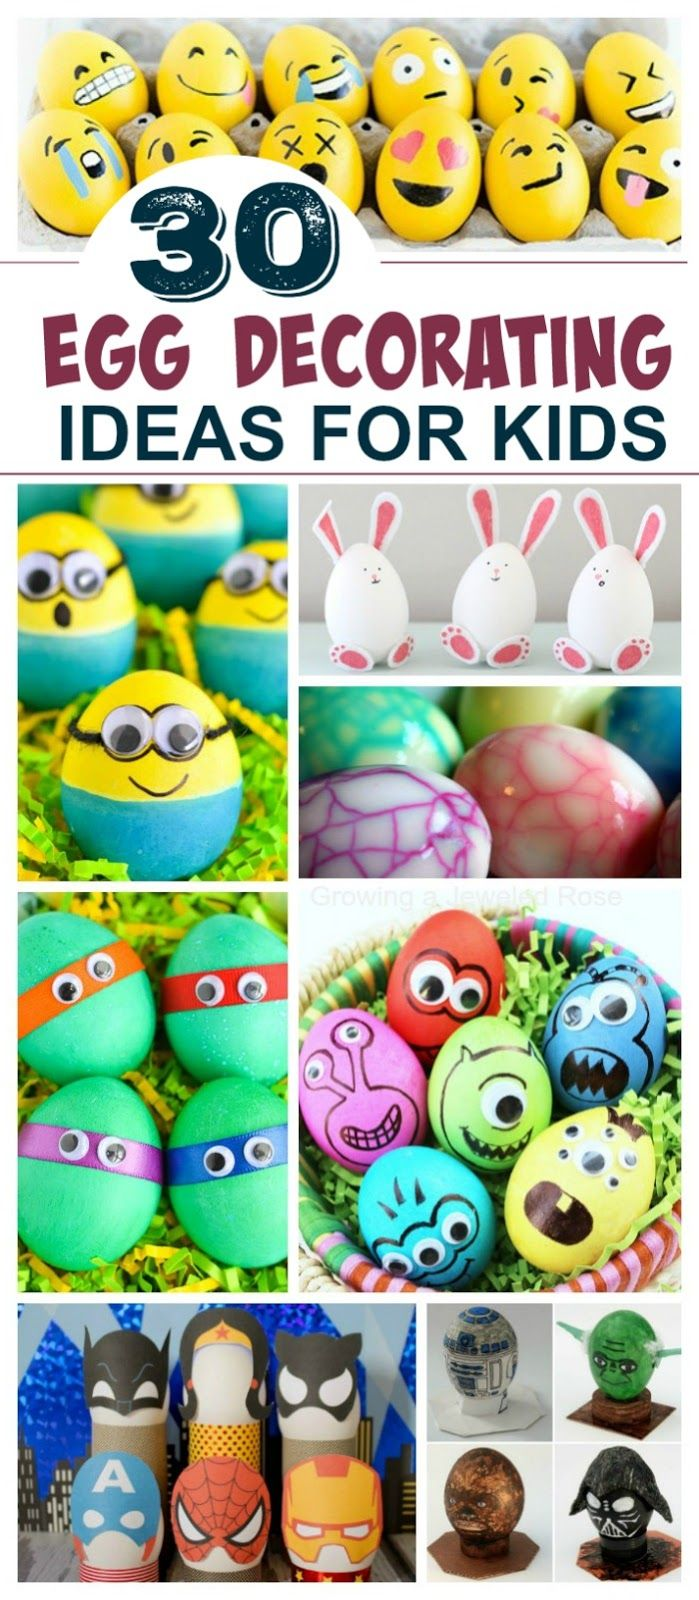 30 Awesome Ways To Dye & Decorate Easter Eggs With Kids So Many Fun Ideas